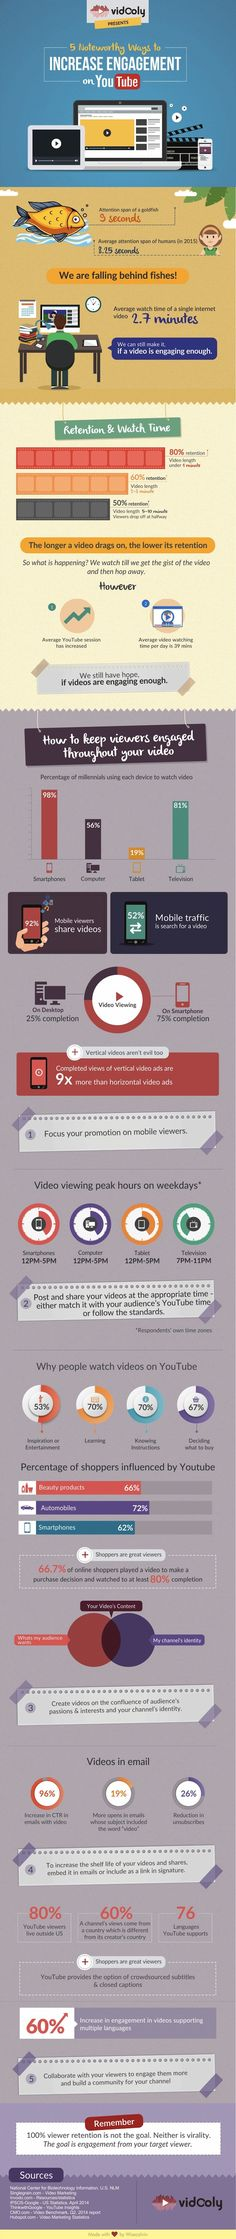 """""""Videos under 1 minute are watched to completion 80% of the time""""----- 5 tips for Increasing YouTube engagement"""